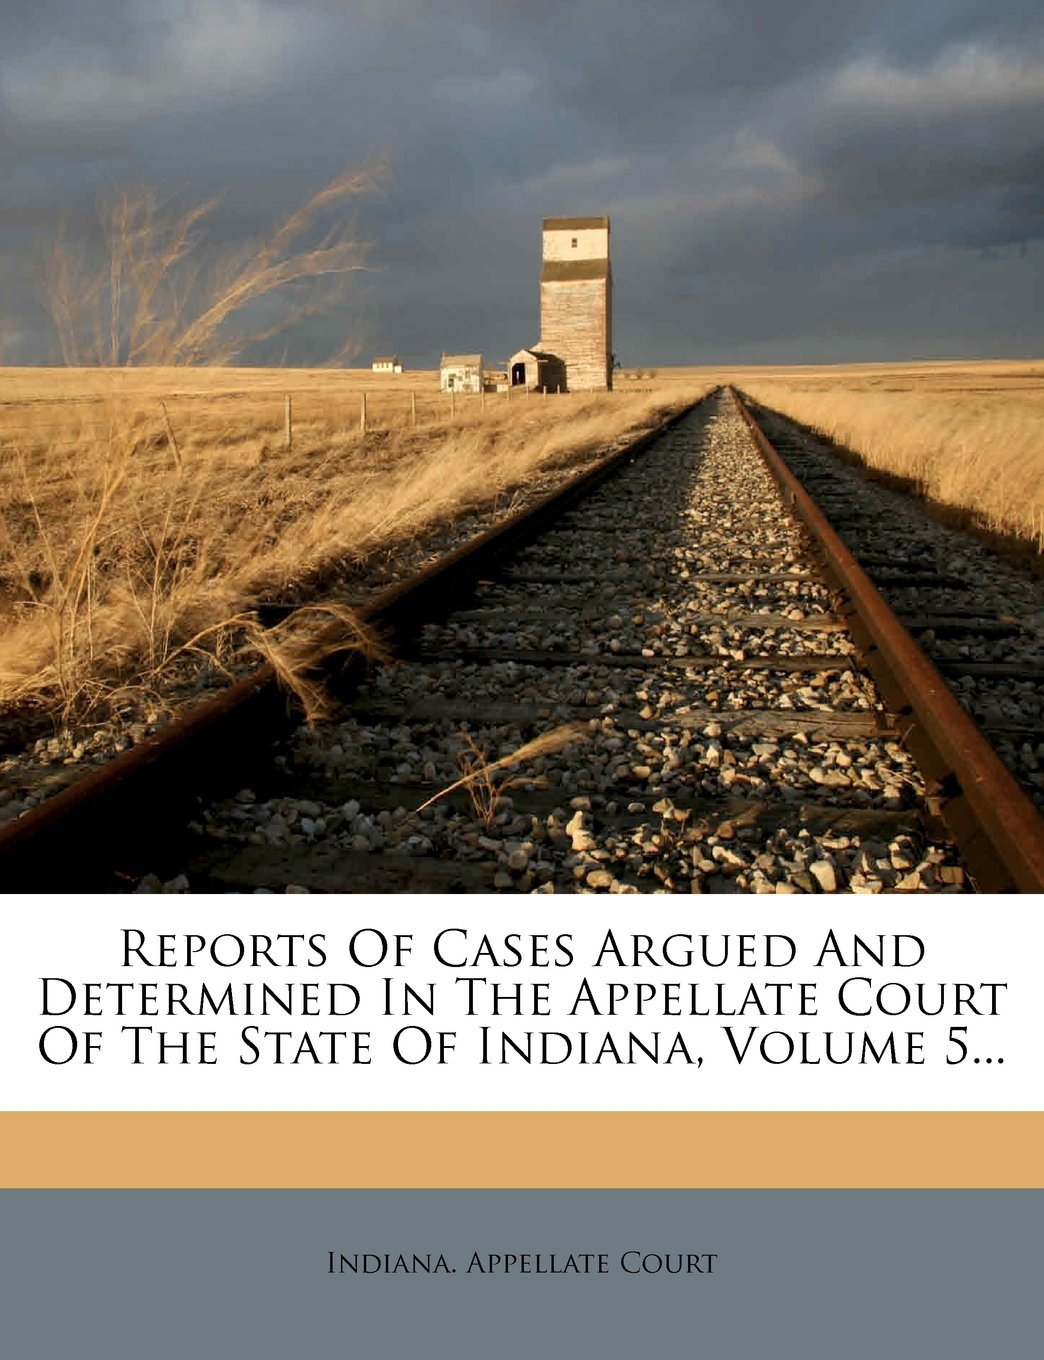 Download Reports Of Cases Argued And Determined In The Appellate Court Of The State Of Indiana, Volume 5... PDF